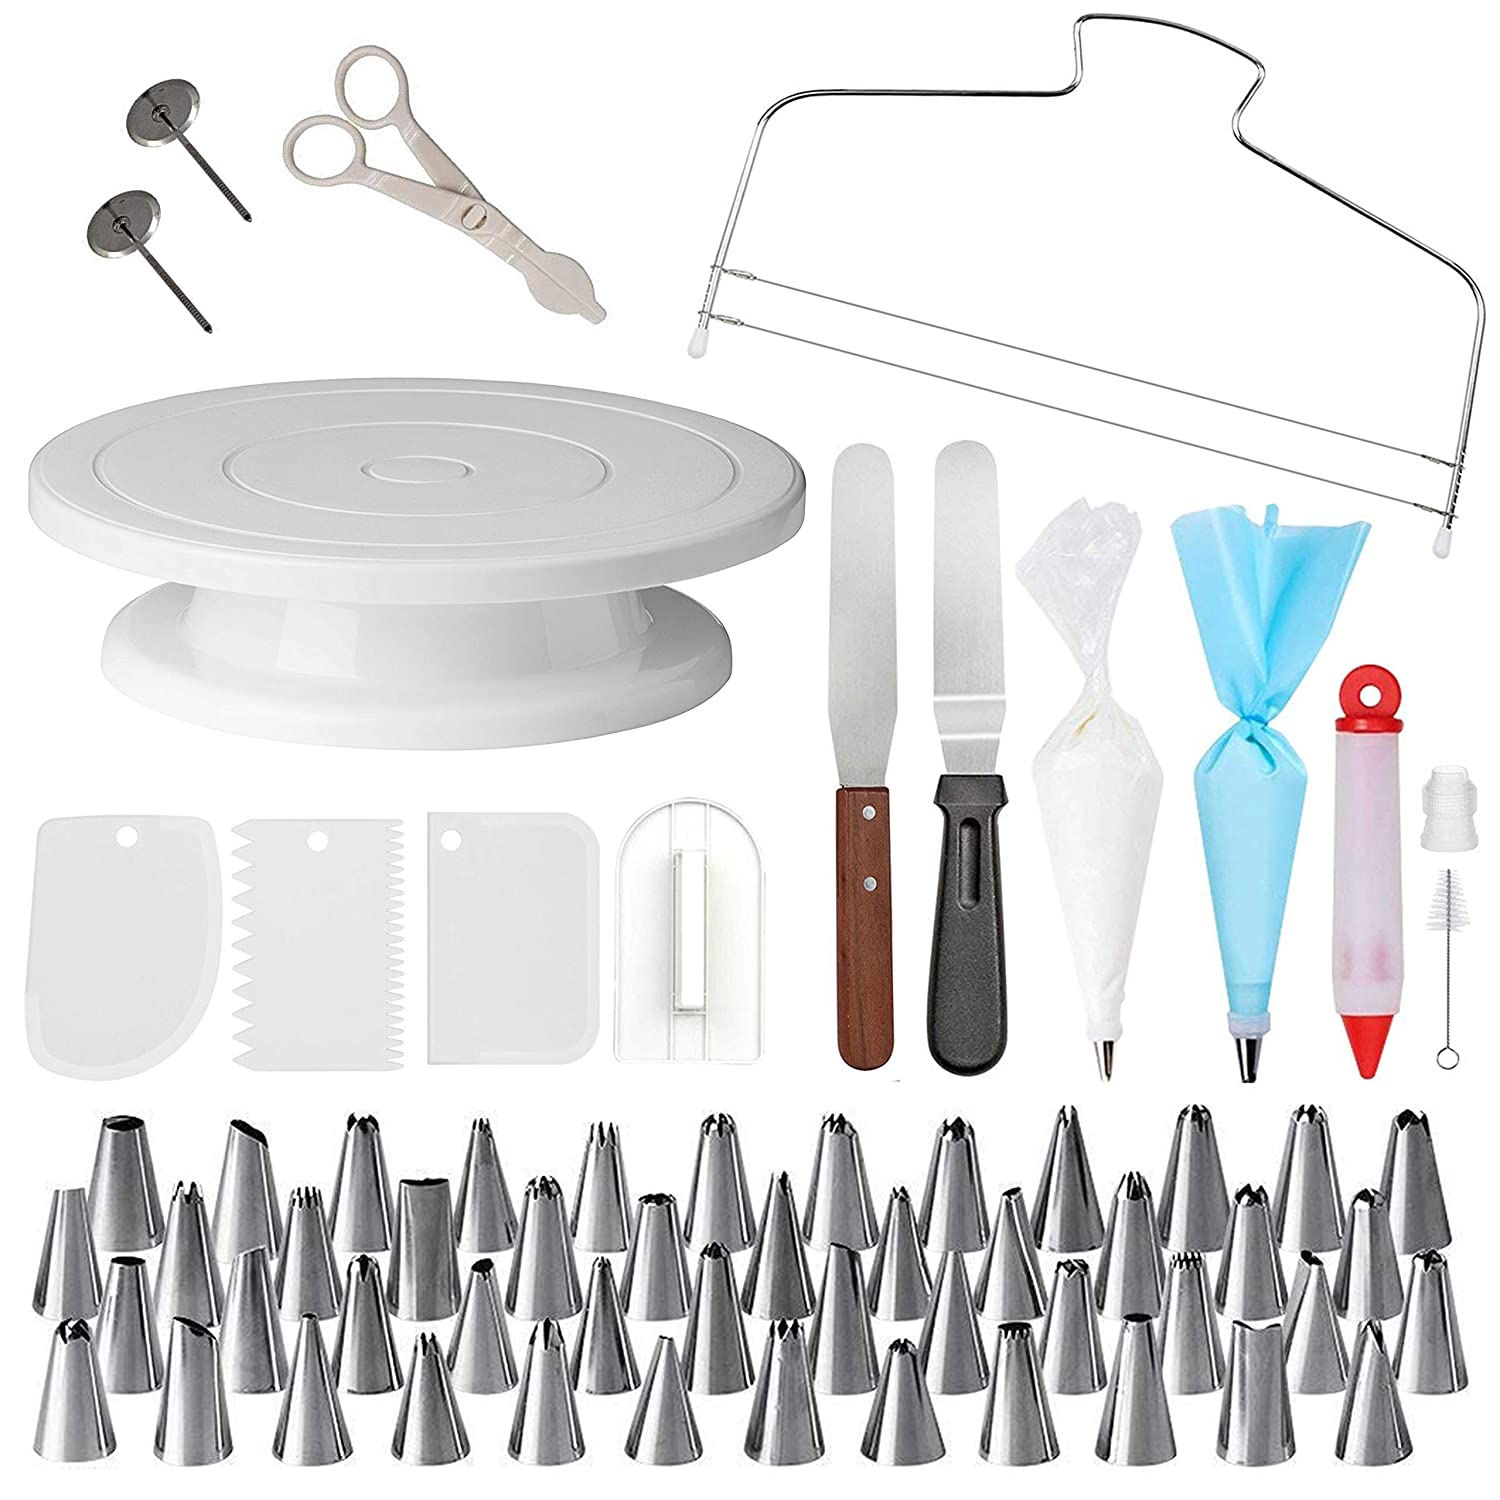 Cake Decorating Supplies with Cake Turntable - Extended 73pcs Baking  Supplies - Baking Kit - Baking Set Includes: Piping Bags and Tips  Decorating